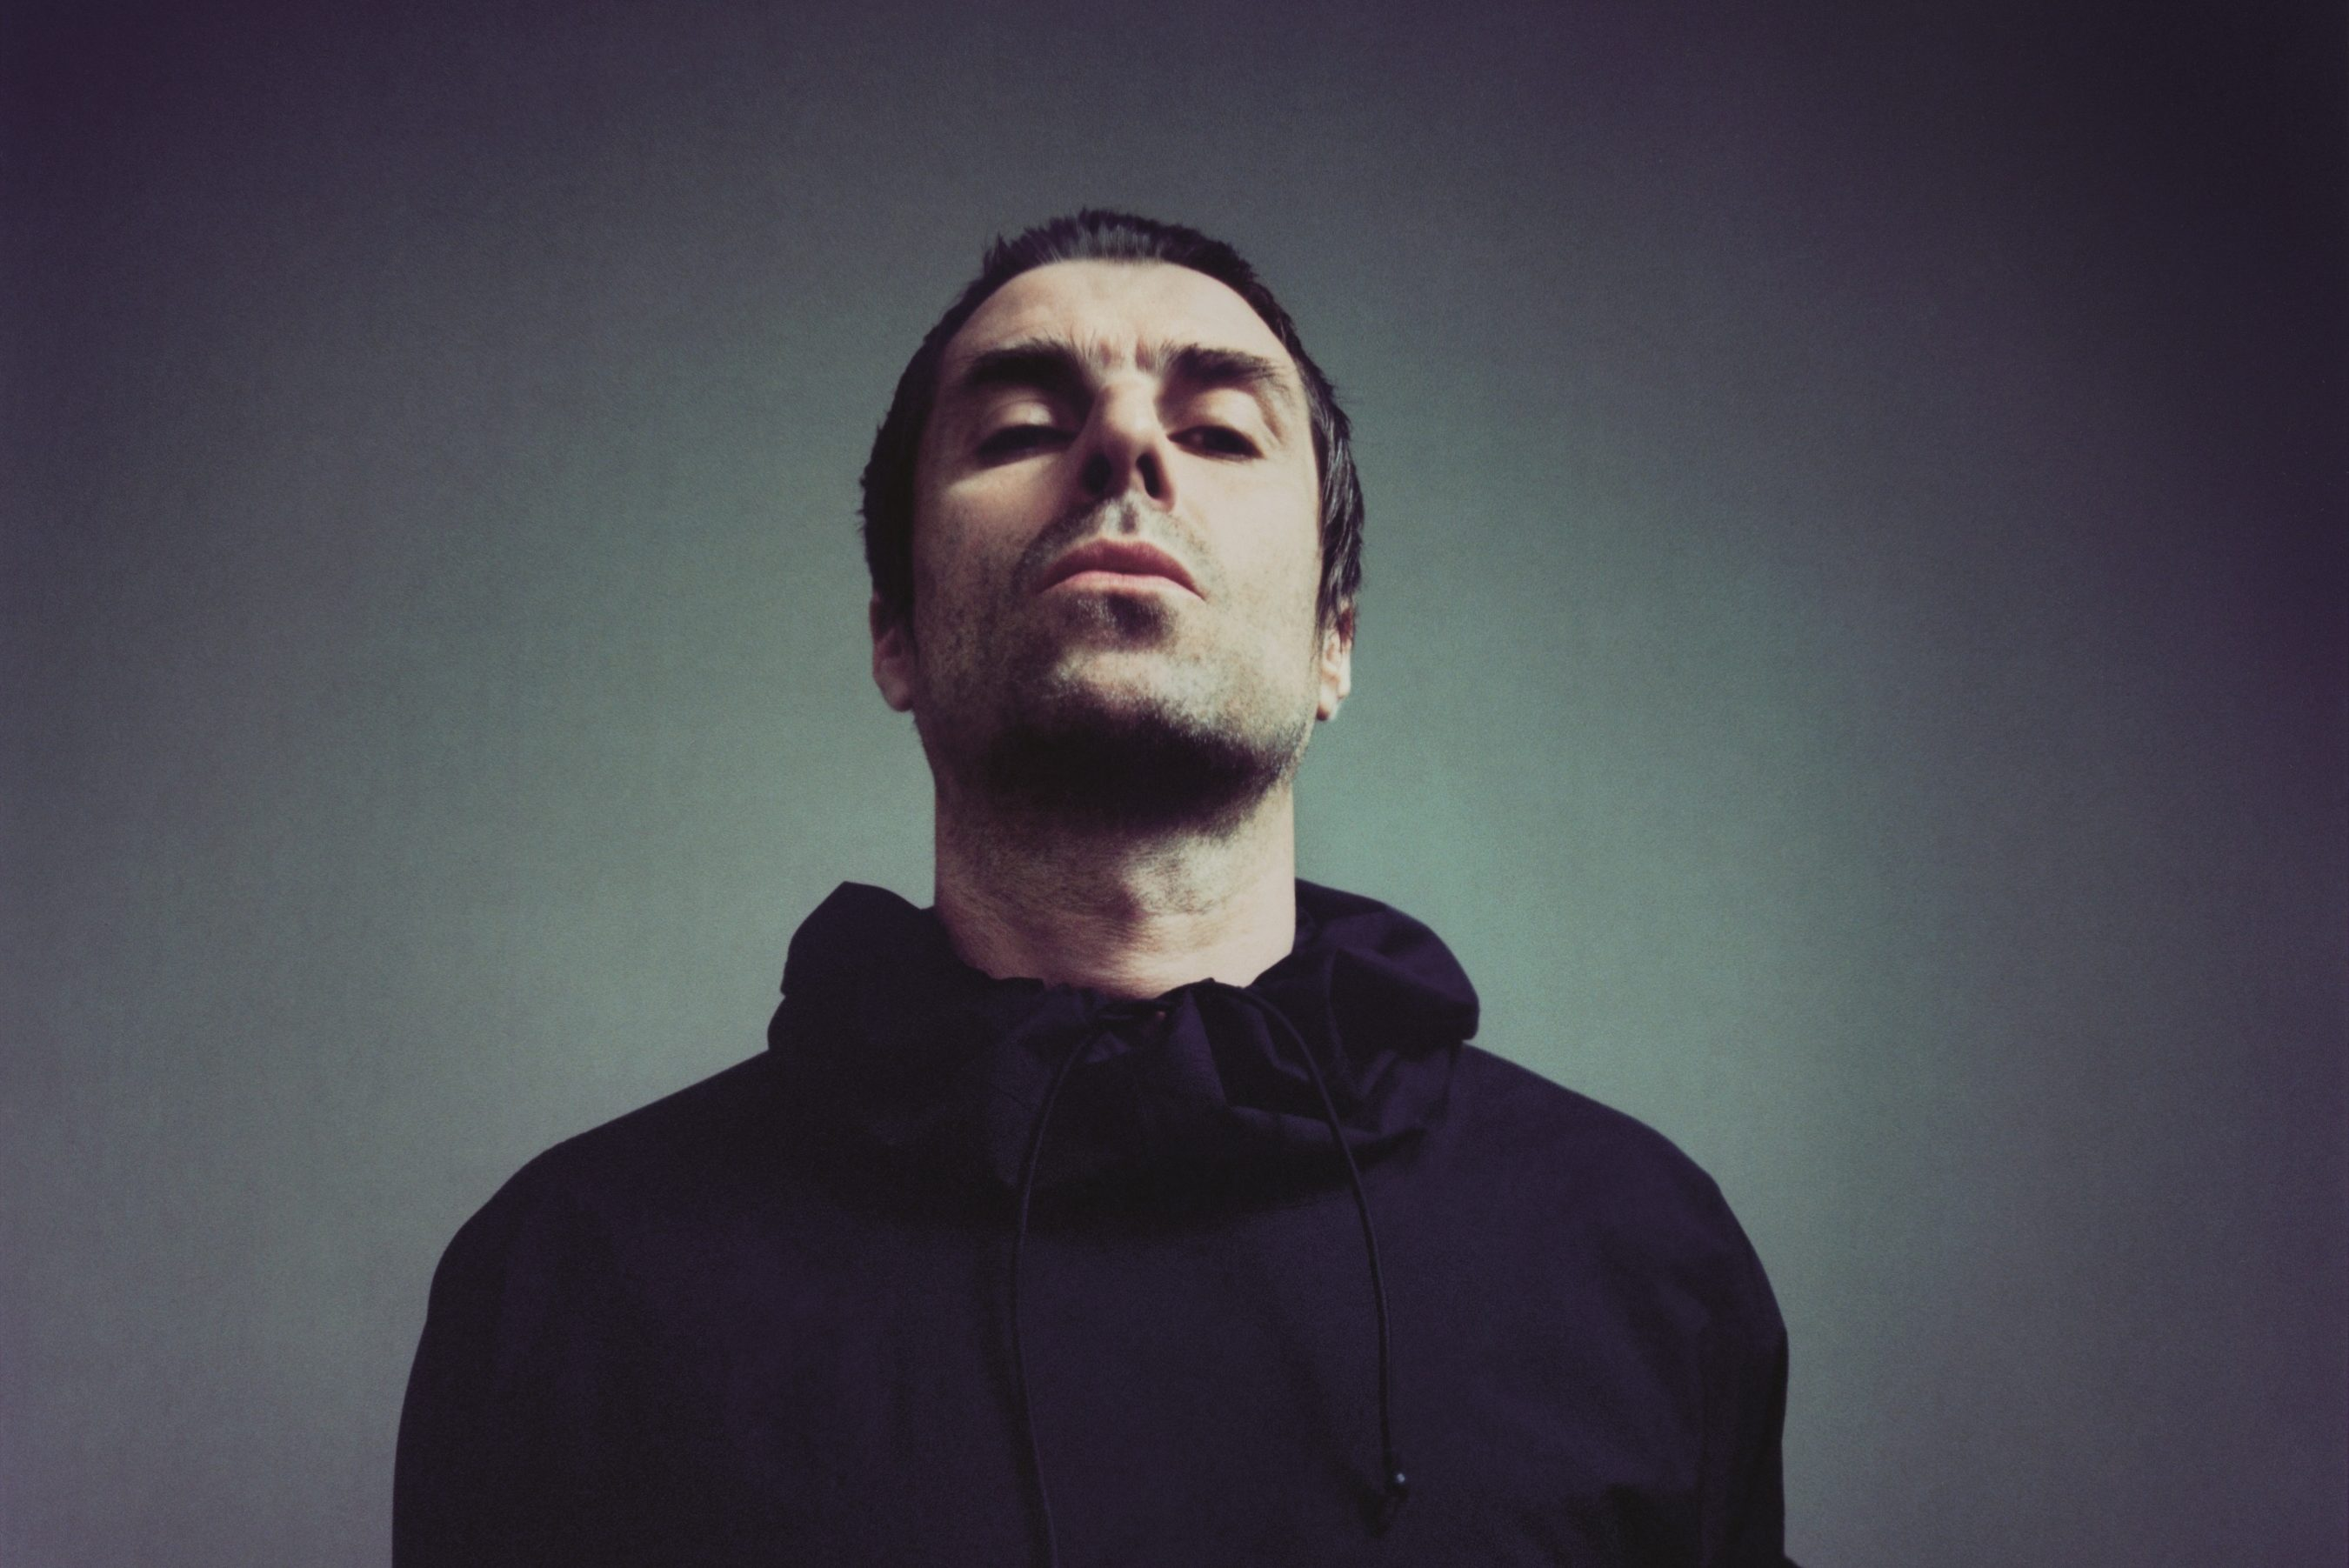 Former Oasis frontman Liam Gallagher to play Auckland